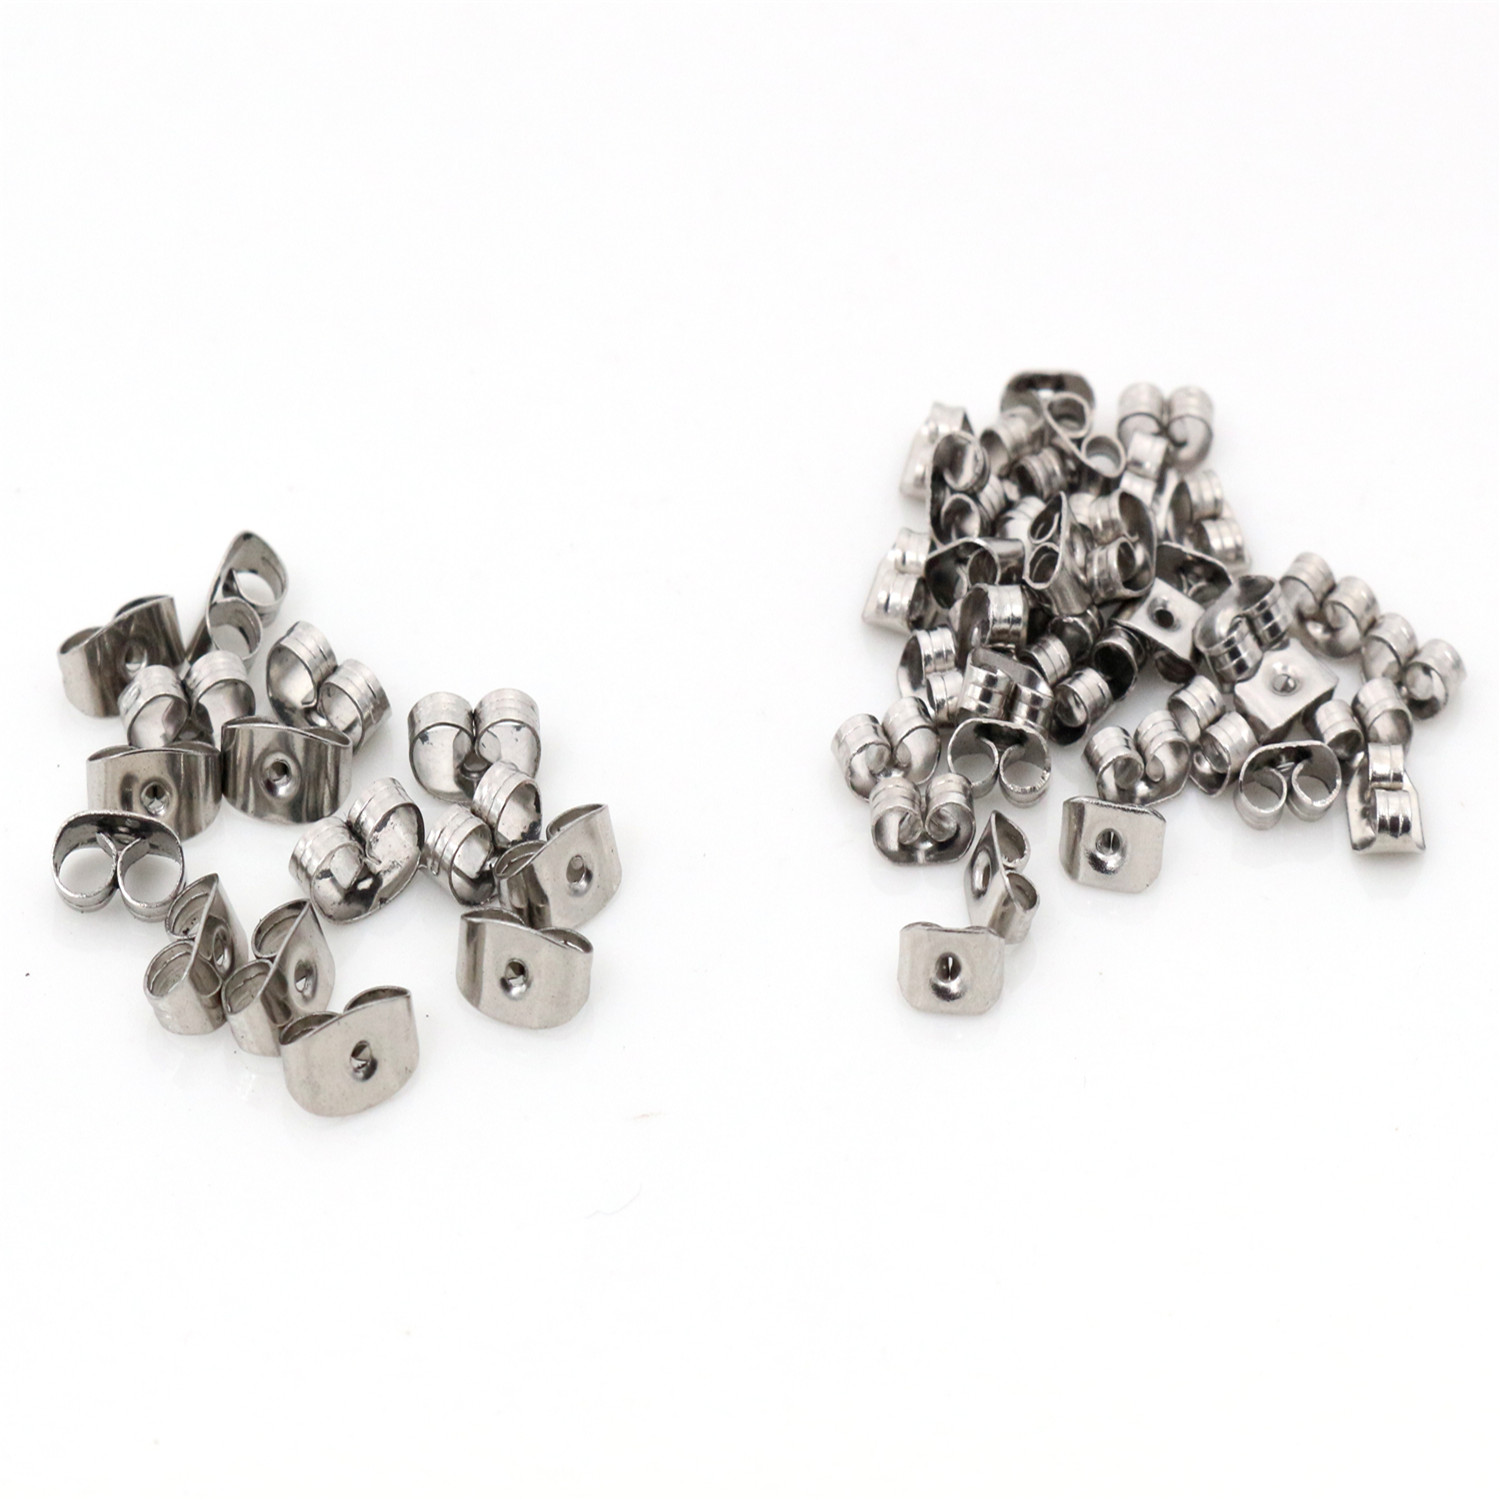 100pcs/Lot High Quality Stainless Steel Earring Back Plug Earring Settings Base Ear Studs Back Earring Stopper Whole Sale